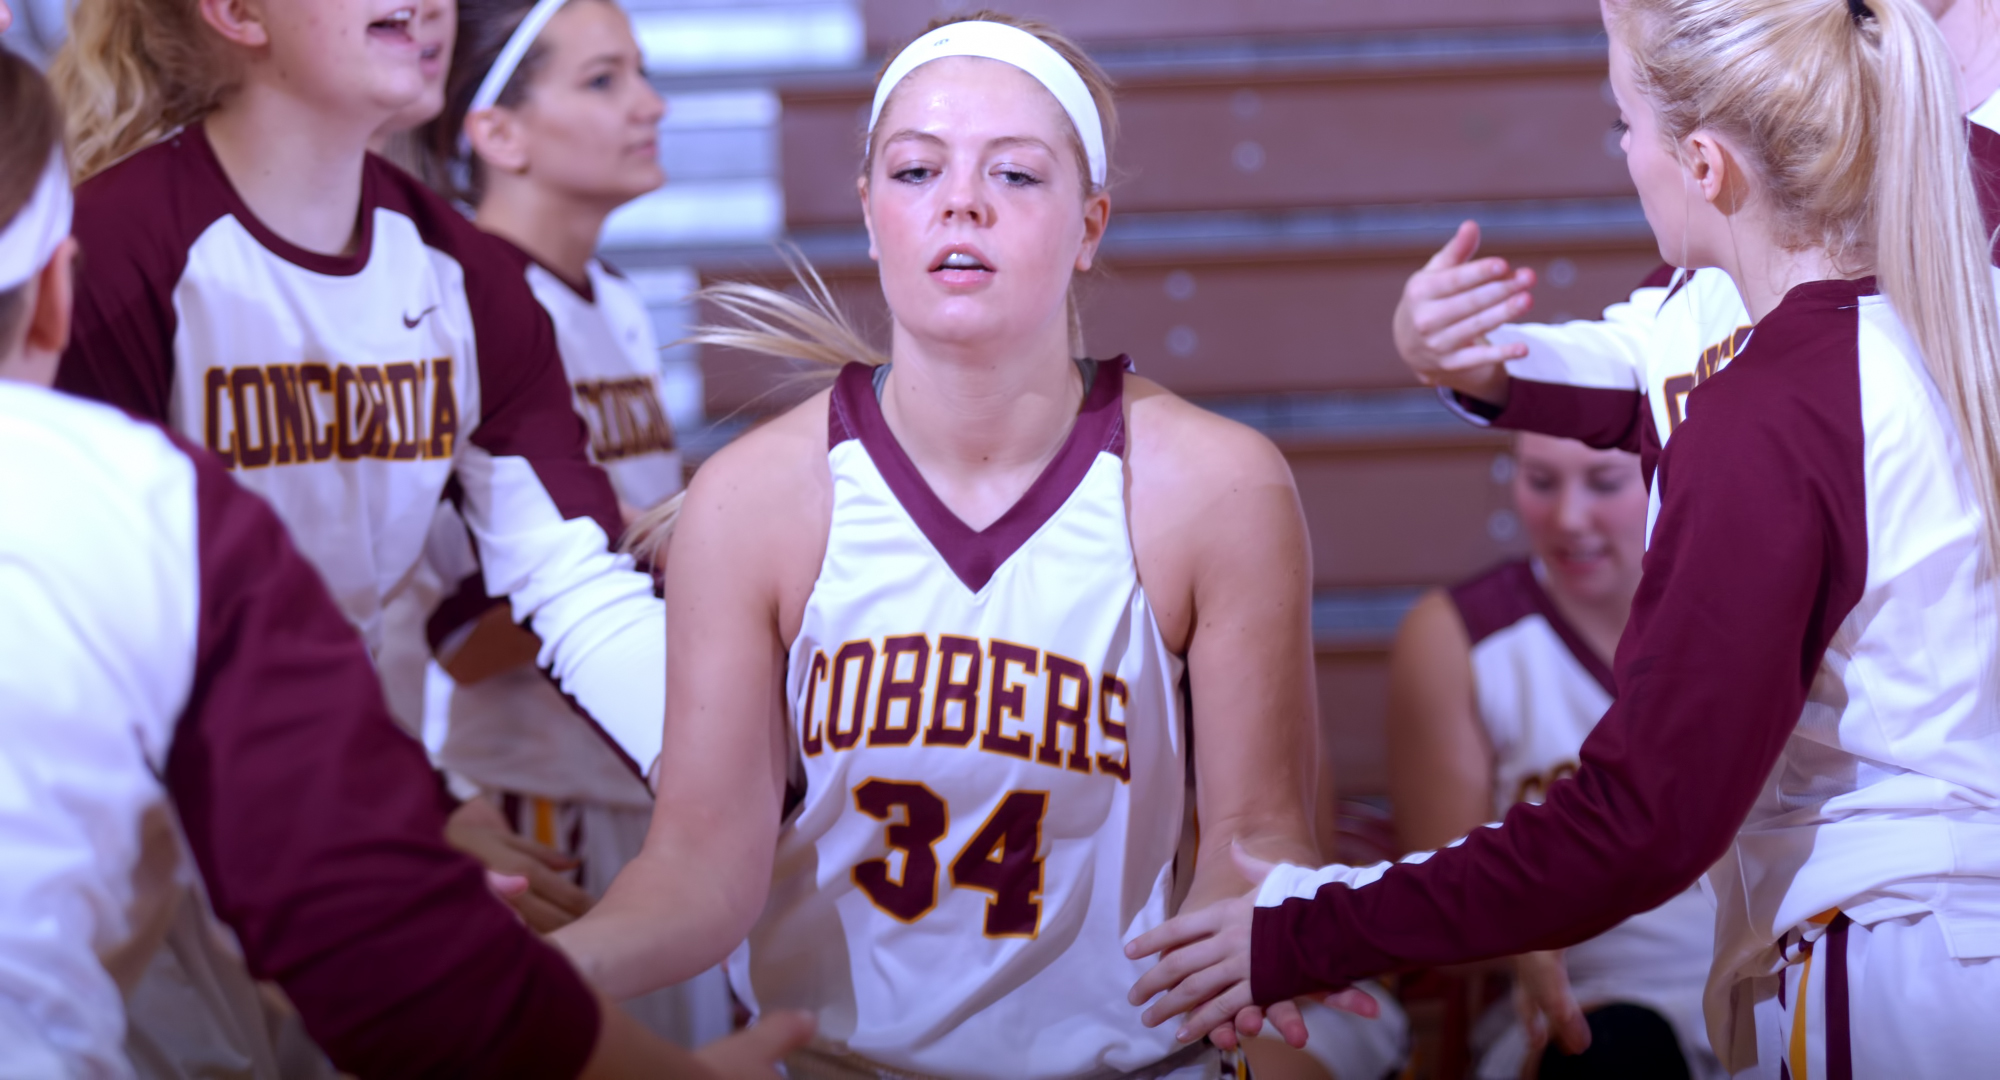 Junior Grace Wolhowe scored a career-high 23 points in the Cobbers' year-ending game at St. Scholastica.